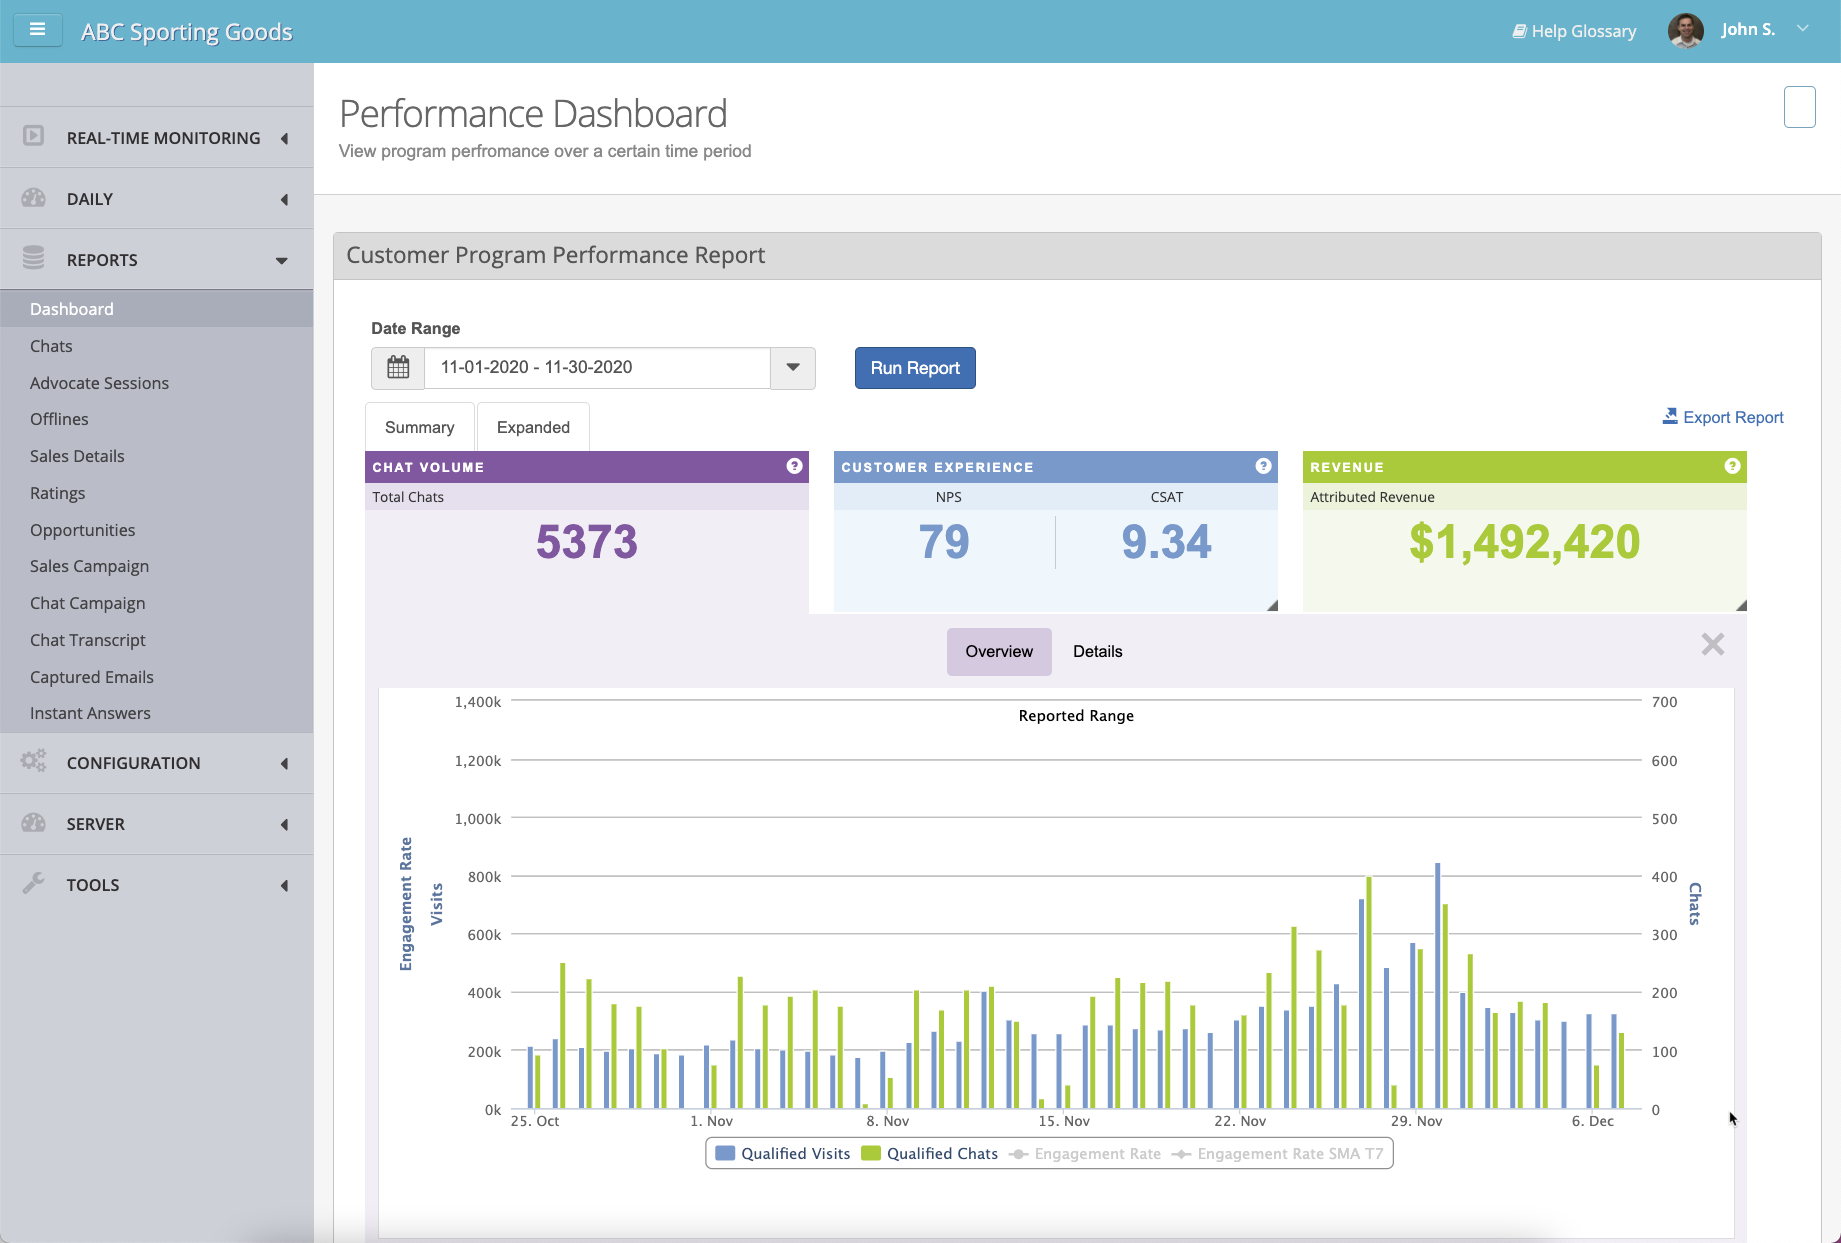 Track the effectiveness of brand advocates with reports and analytics